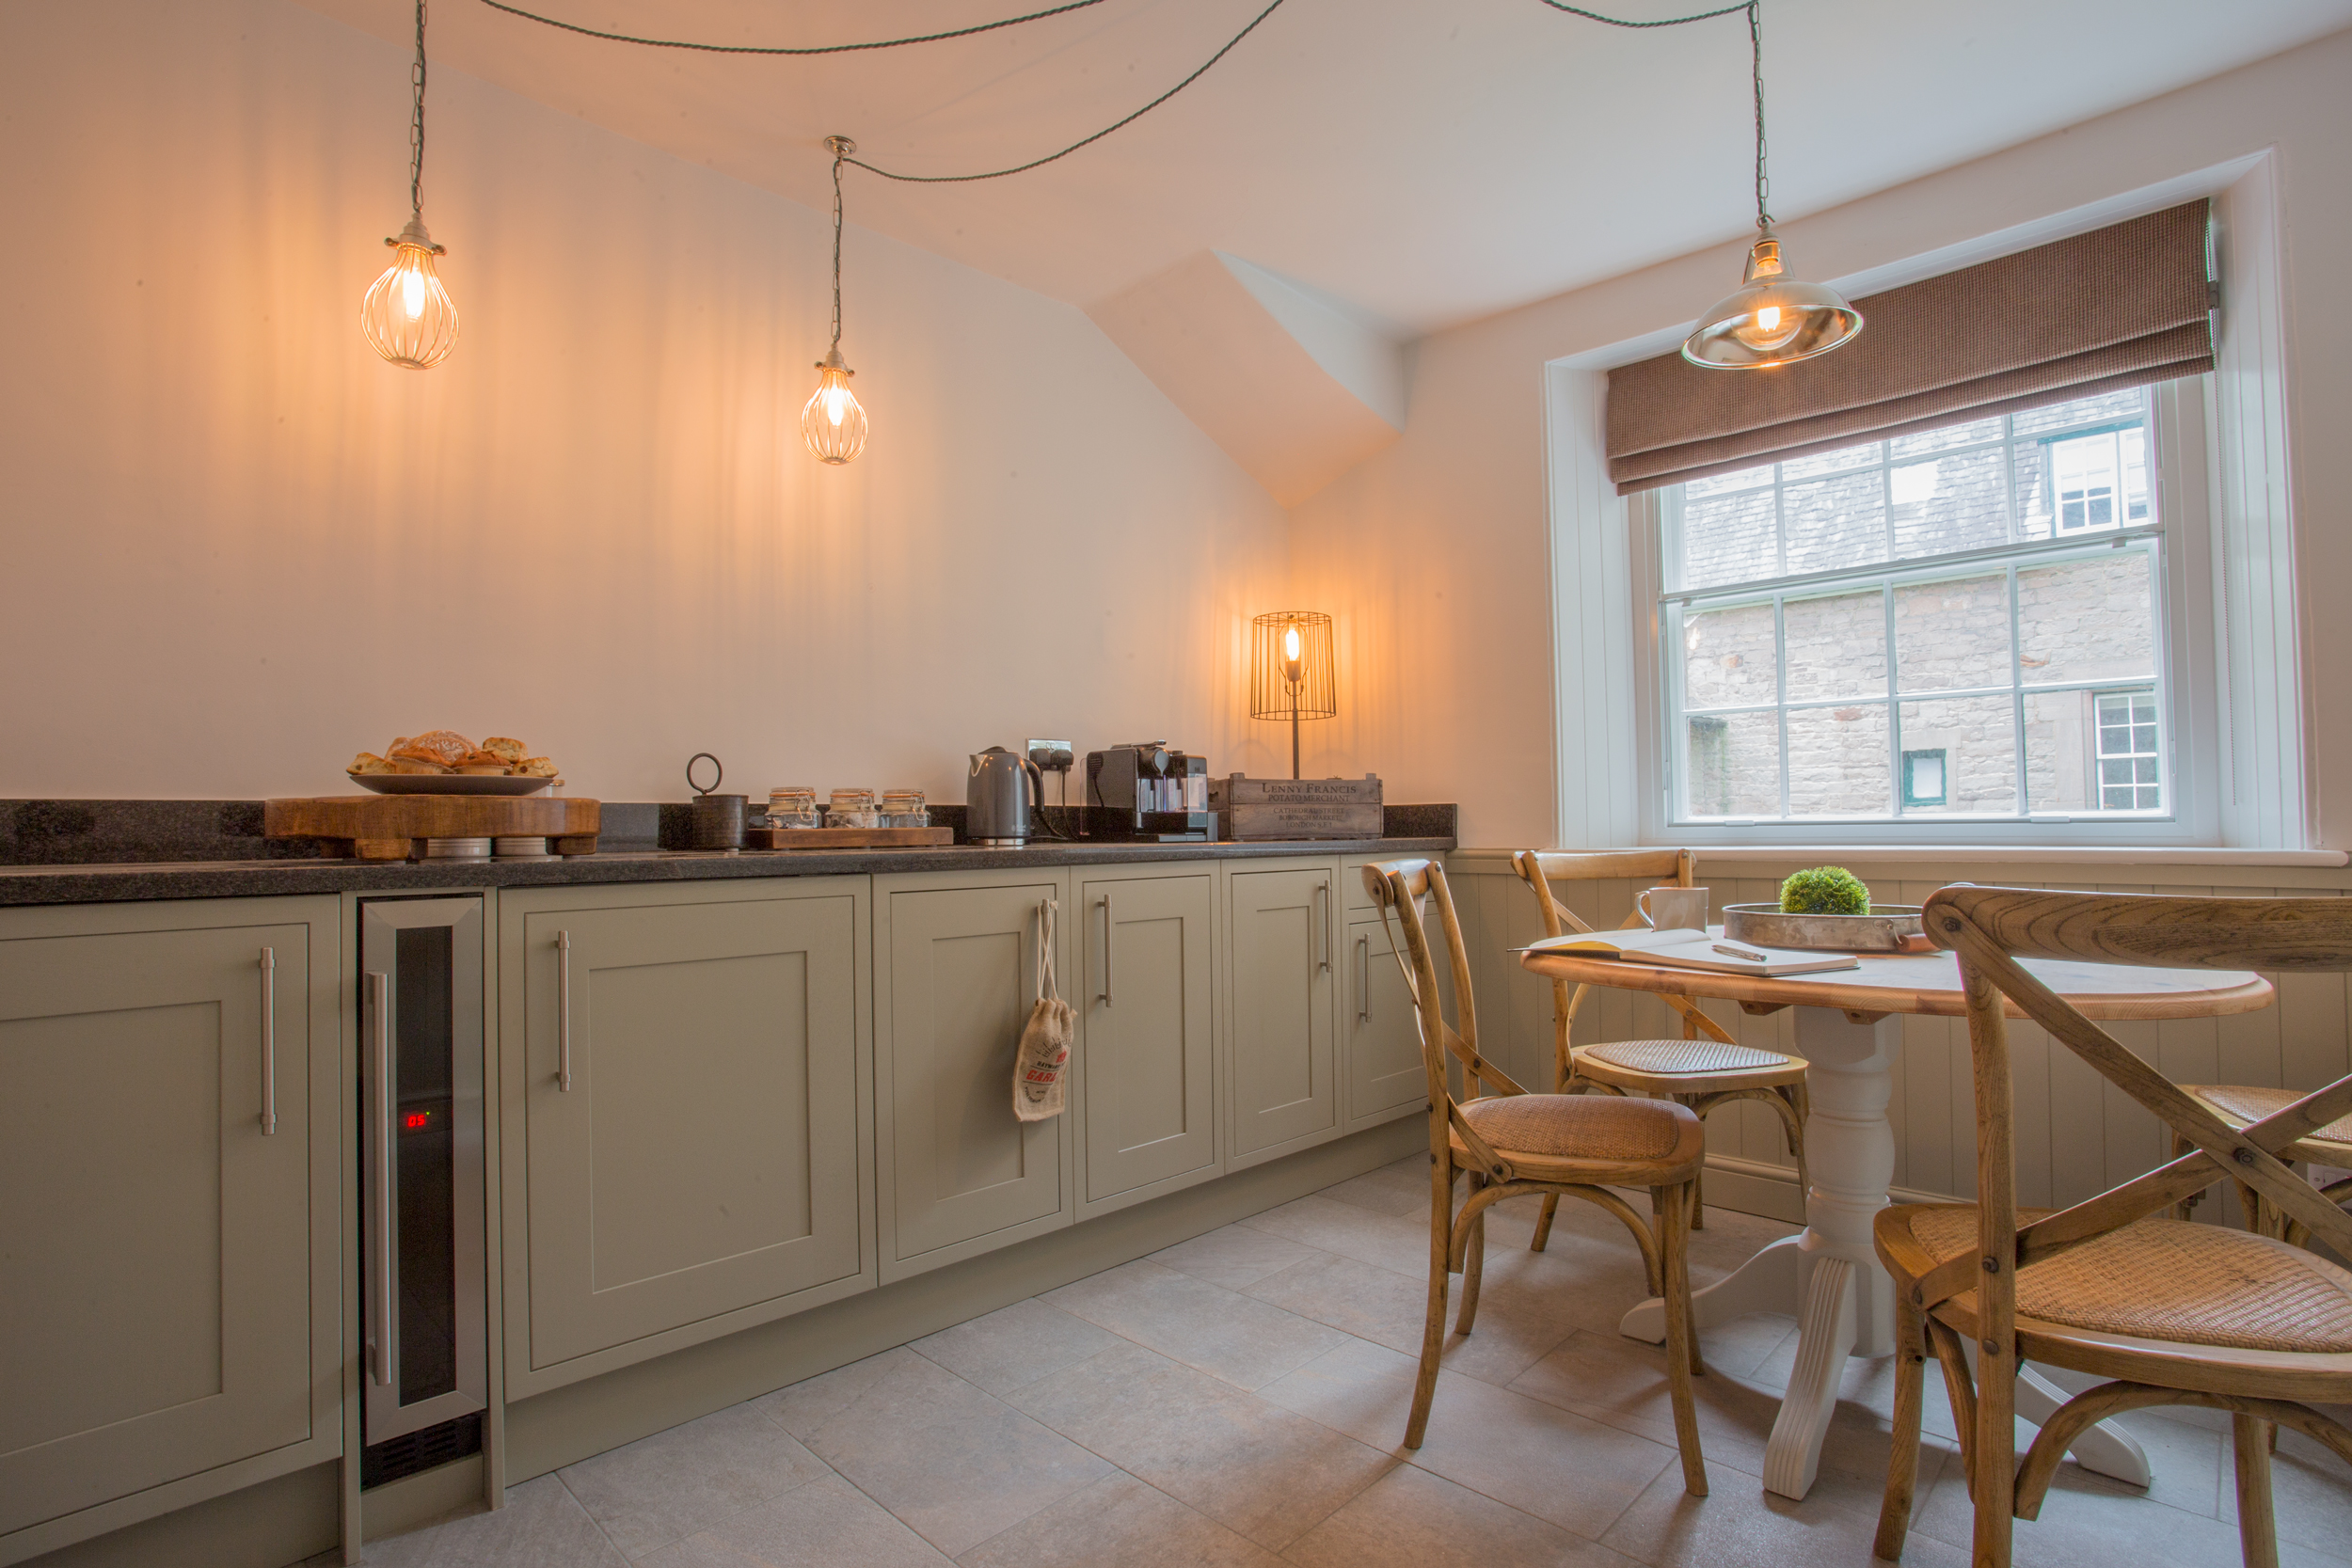 best holiday cottages in Alnwick for couples, romantic hunting lodges in Northumberland, luxurious cottages Northumberland